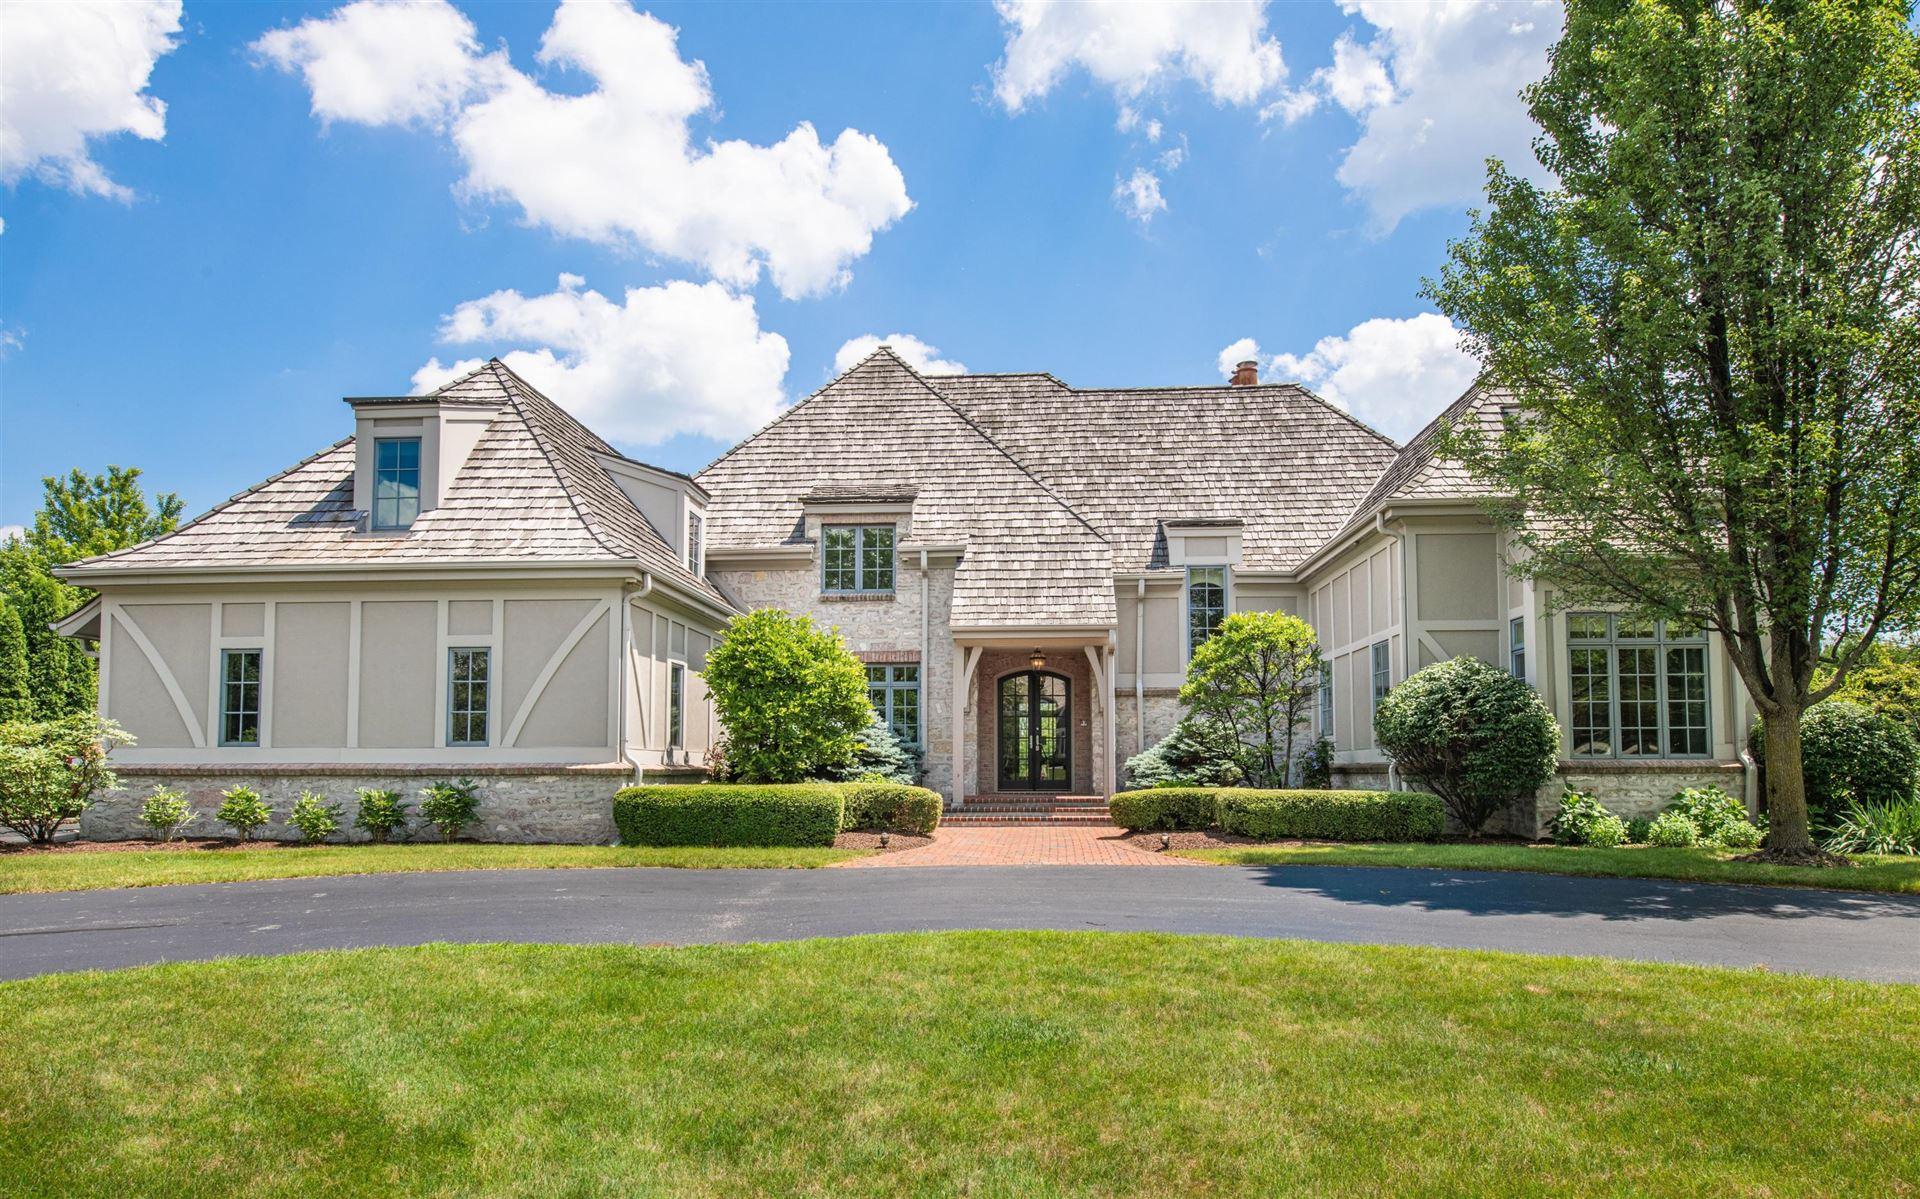 11650 N Canterbury Dr, Mequon, WI 53092 - #: 1696195